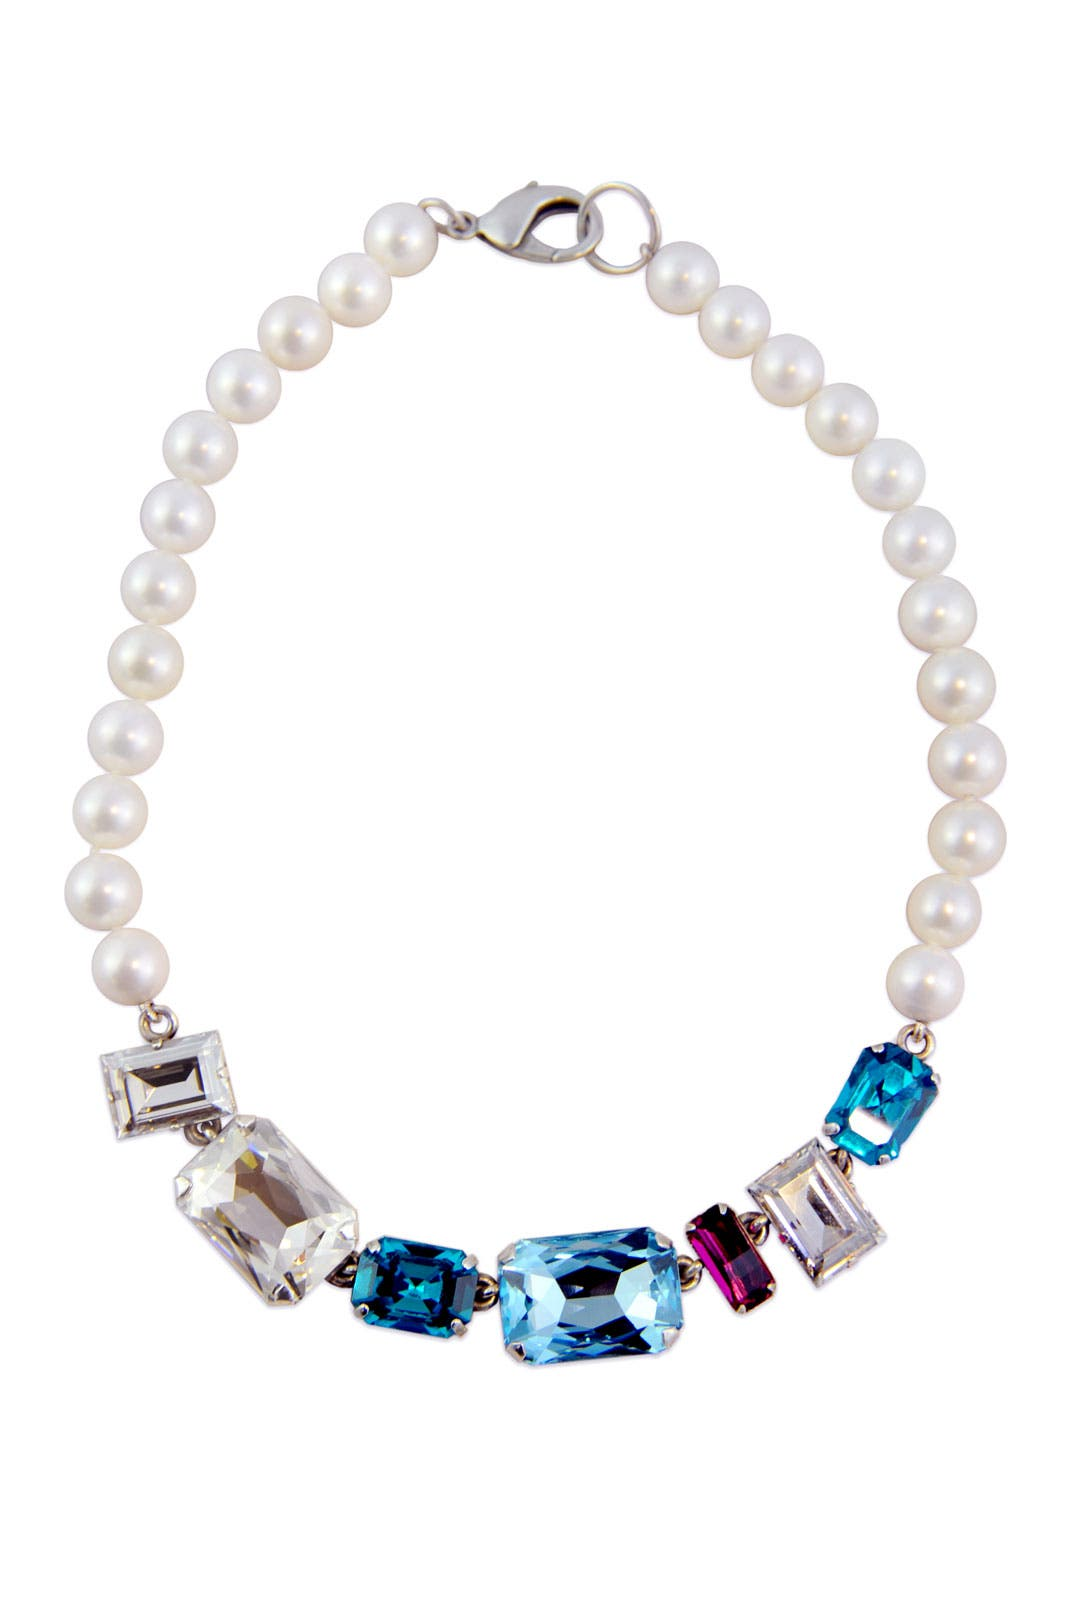 Pearl Prism Necklace by Janis Savitt